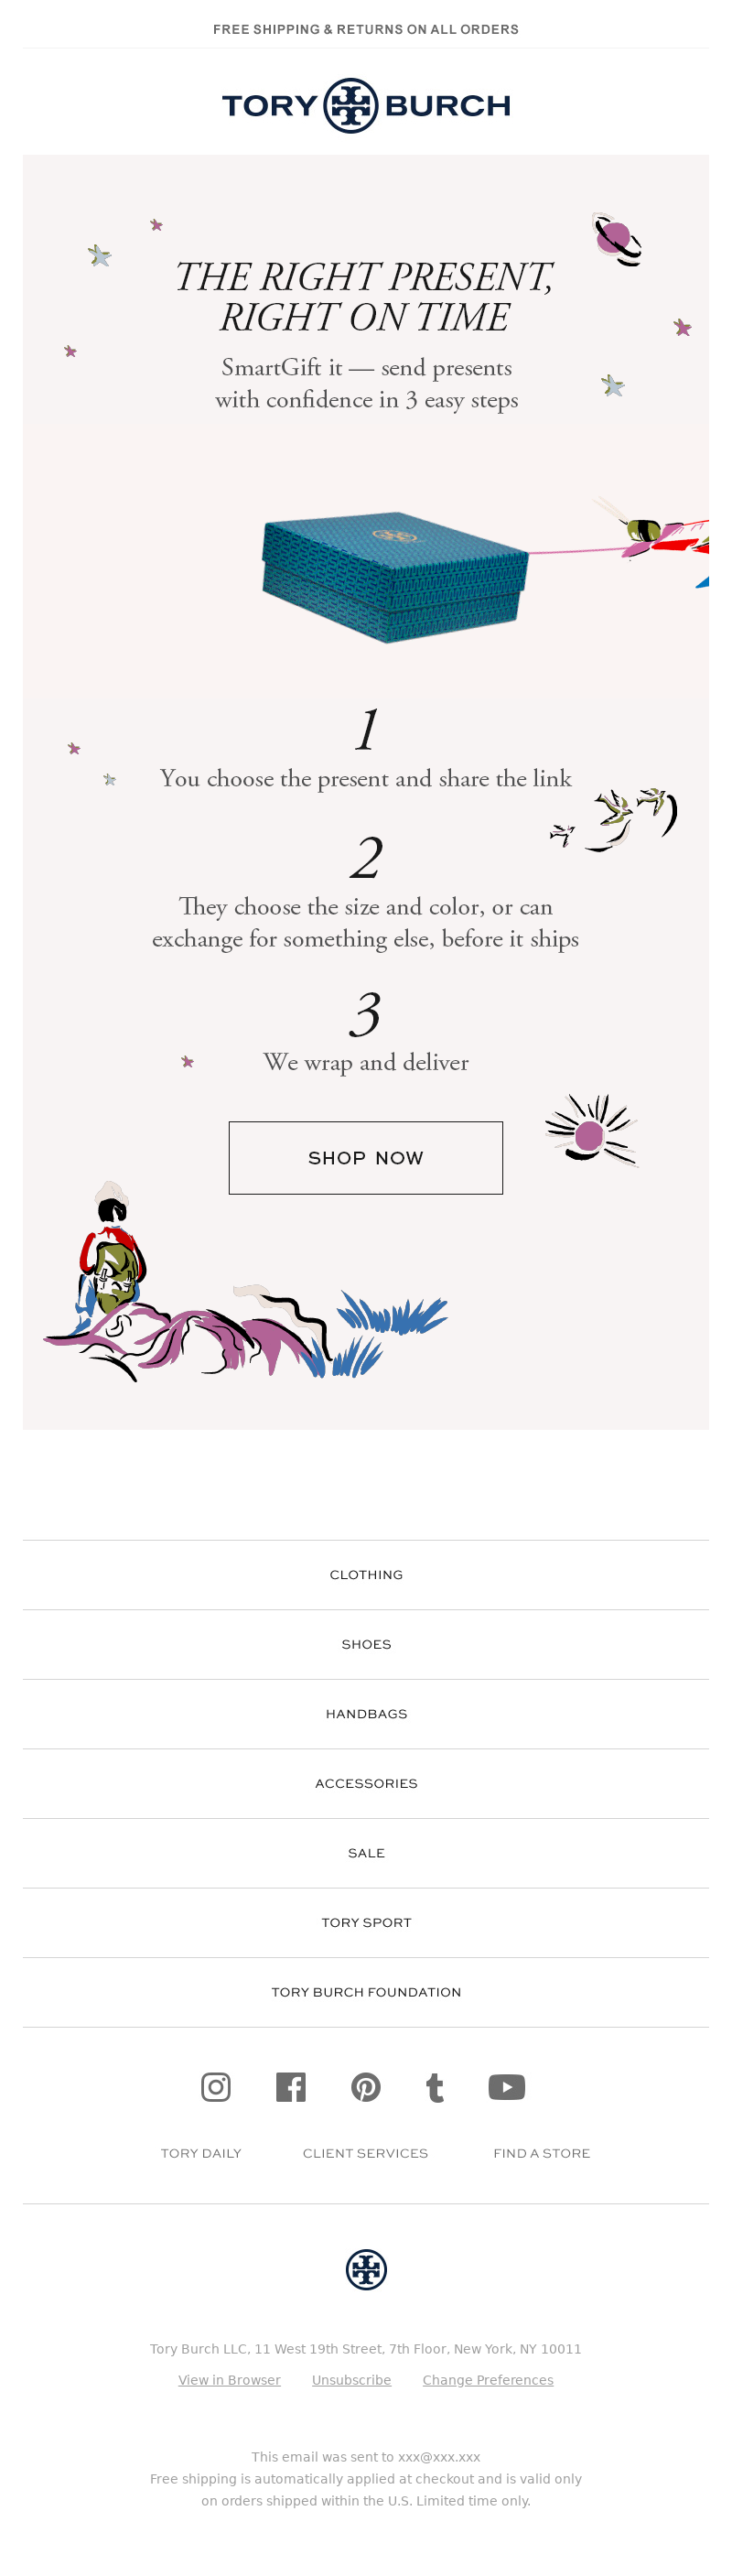 Christmas email example promoting last minute gifts